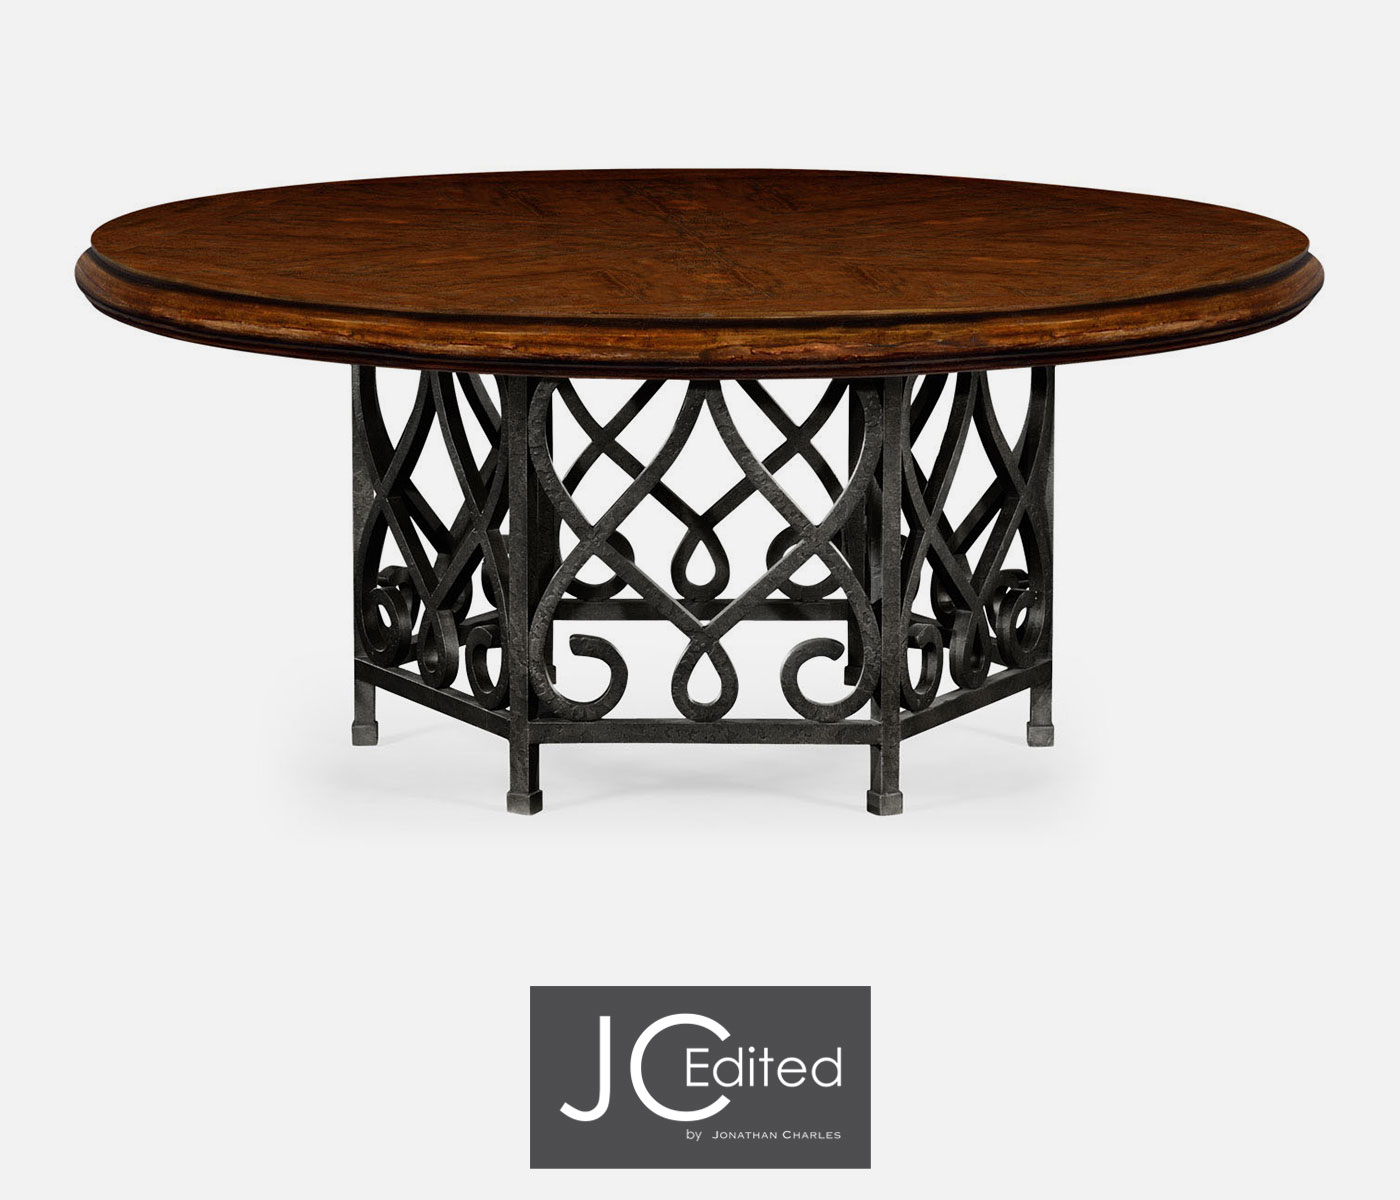 72 rustic walnut dining table for wrought iron base for Wrought iron dining table